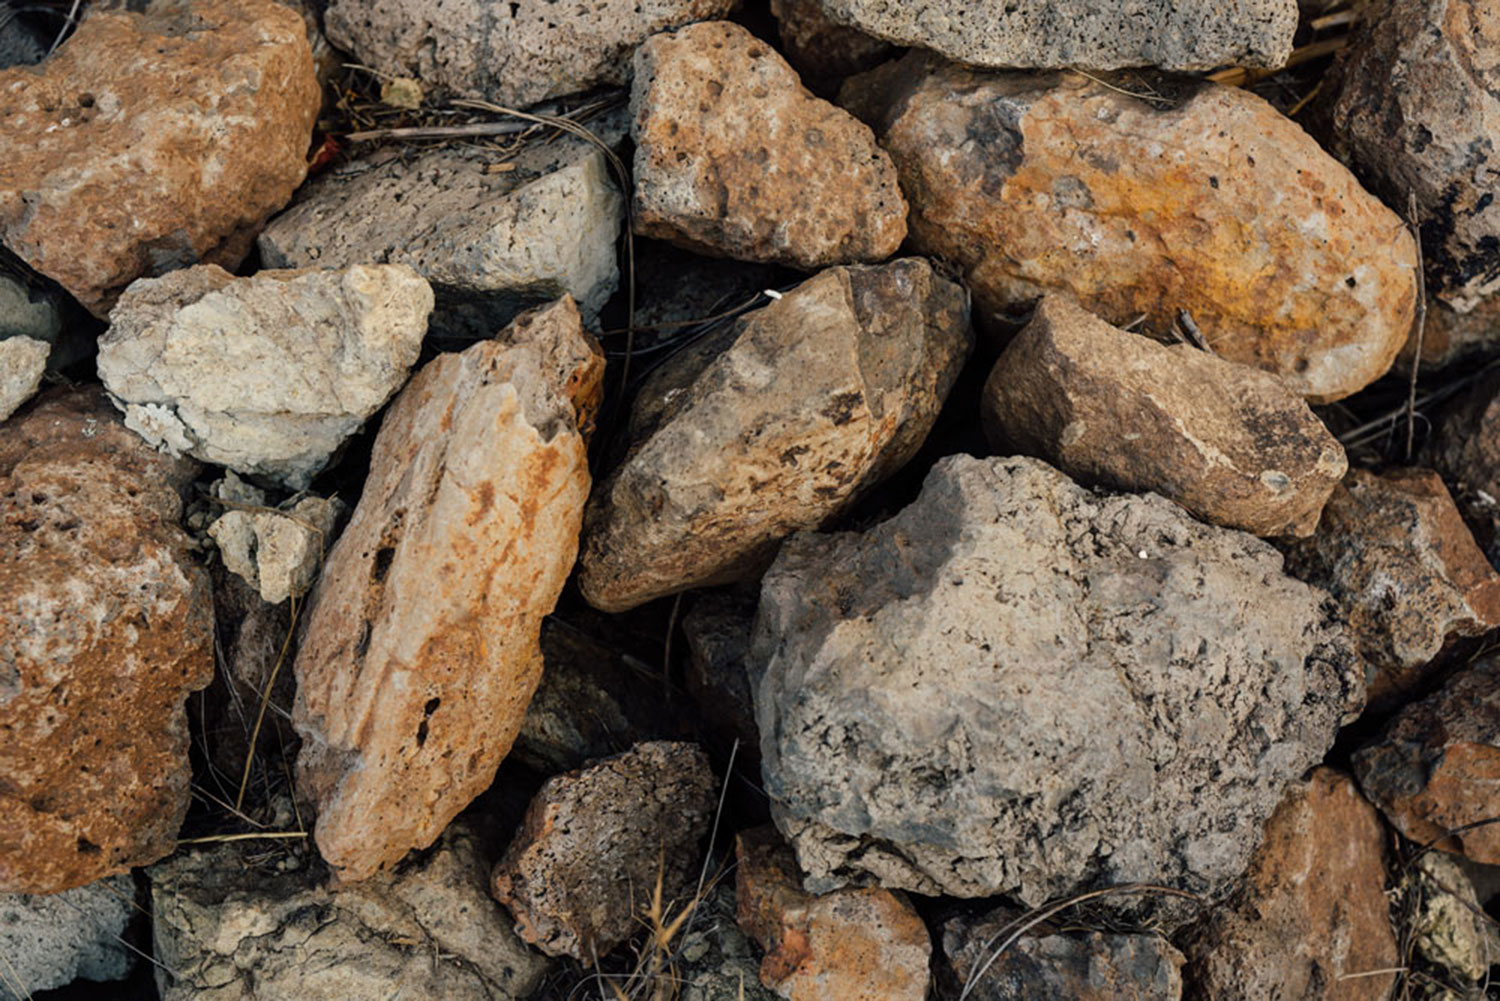 Detail of the soil and rocks at the Linda Falls Vineyard